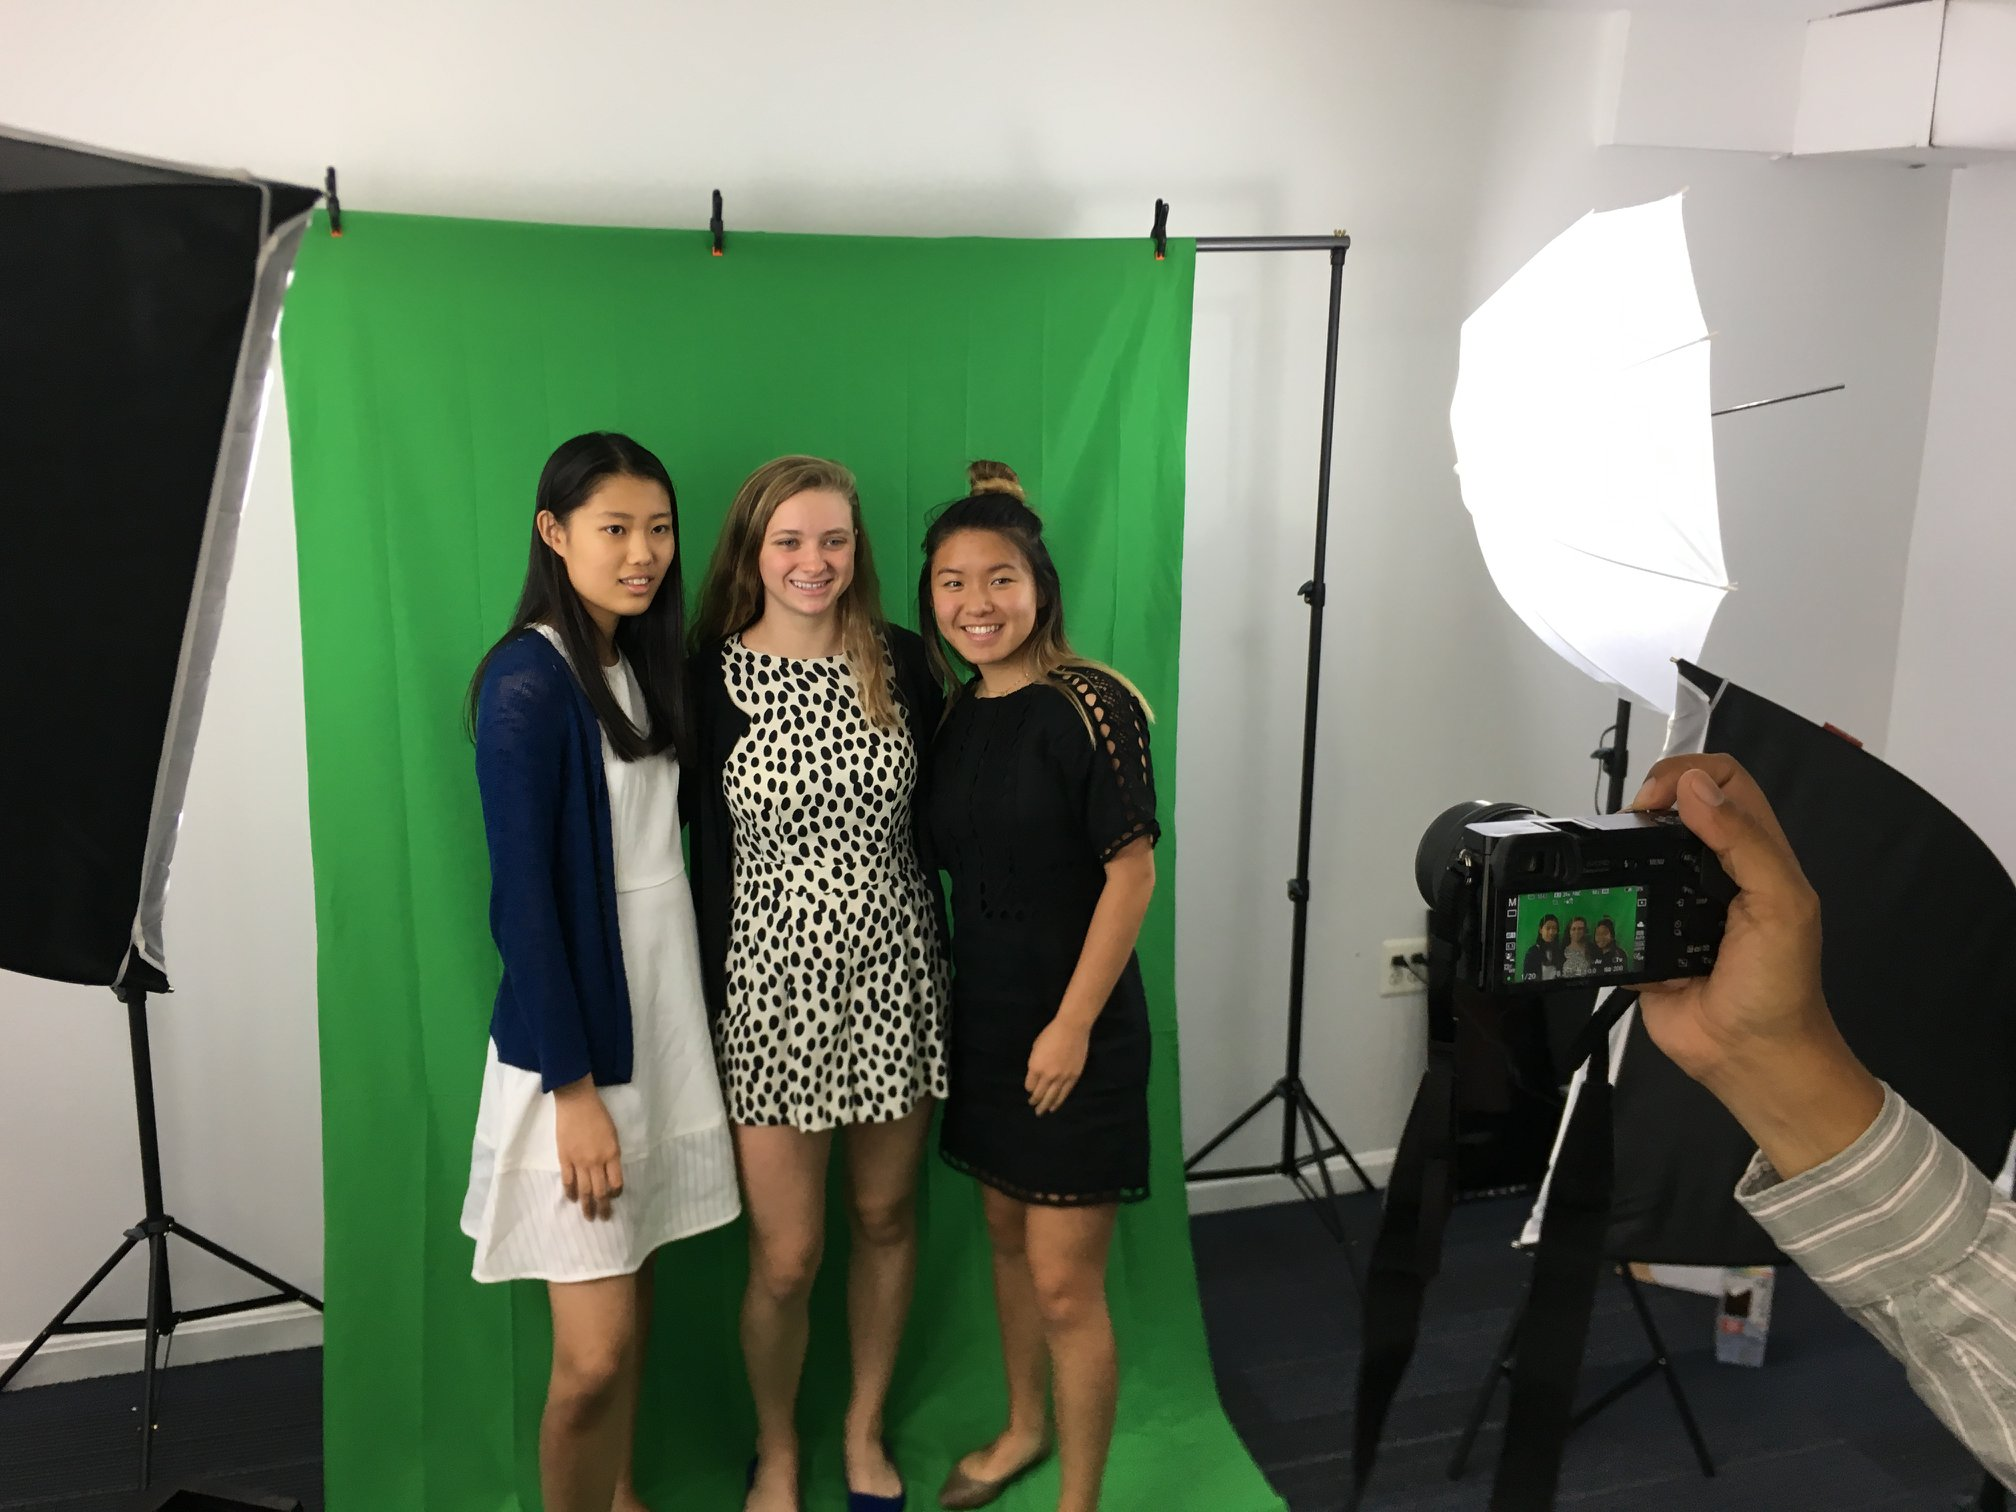 The Madeira School students, Sally Cao, Giovanna Moriarity, and Margaret Needler, during their Spring Internship at Illustrate My Design (IMD) | Spring 2018